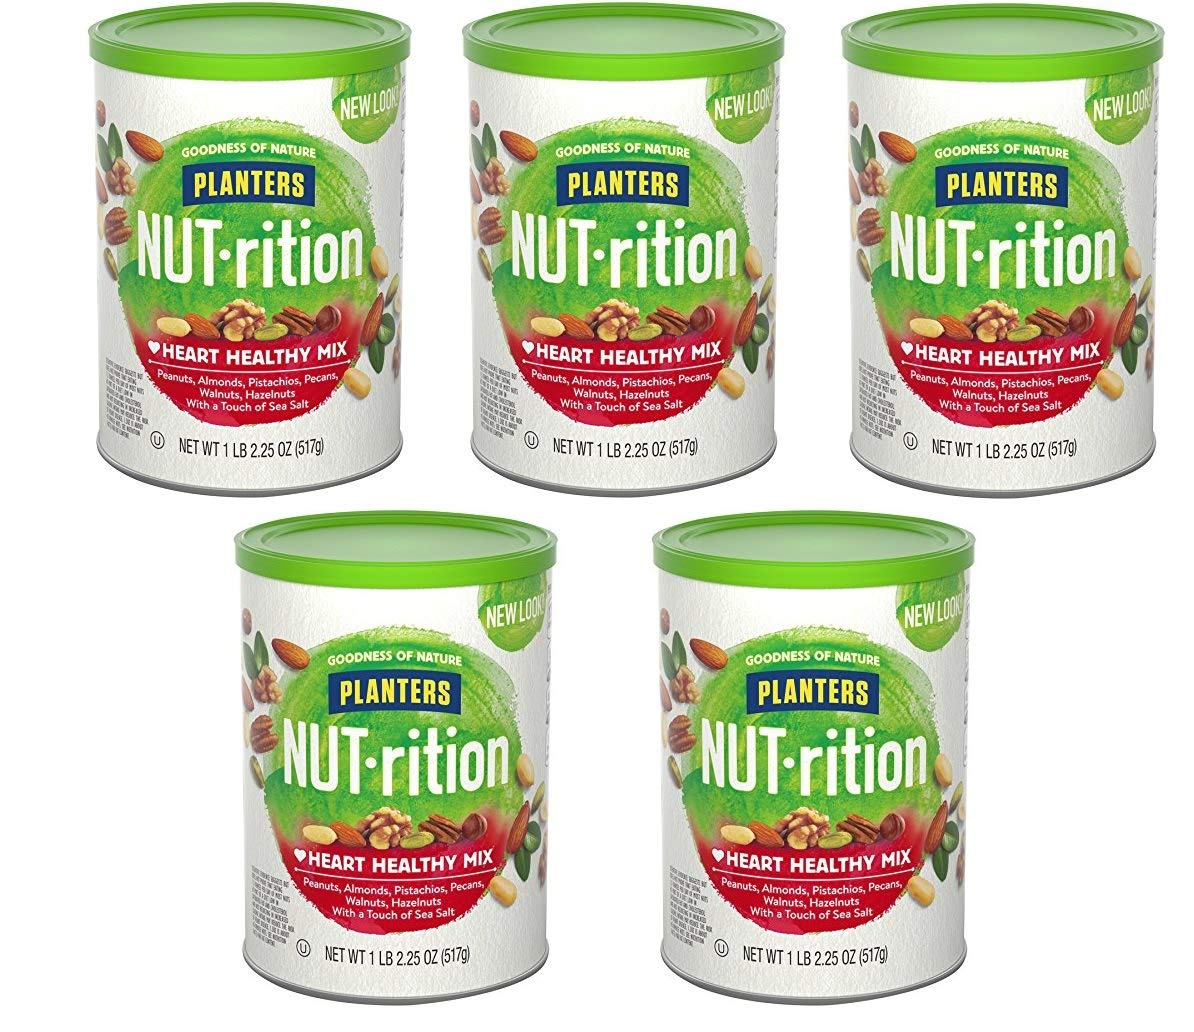 Planters Nutrition Heart Healthy Mix, 5 Tubs